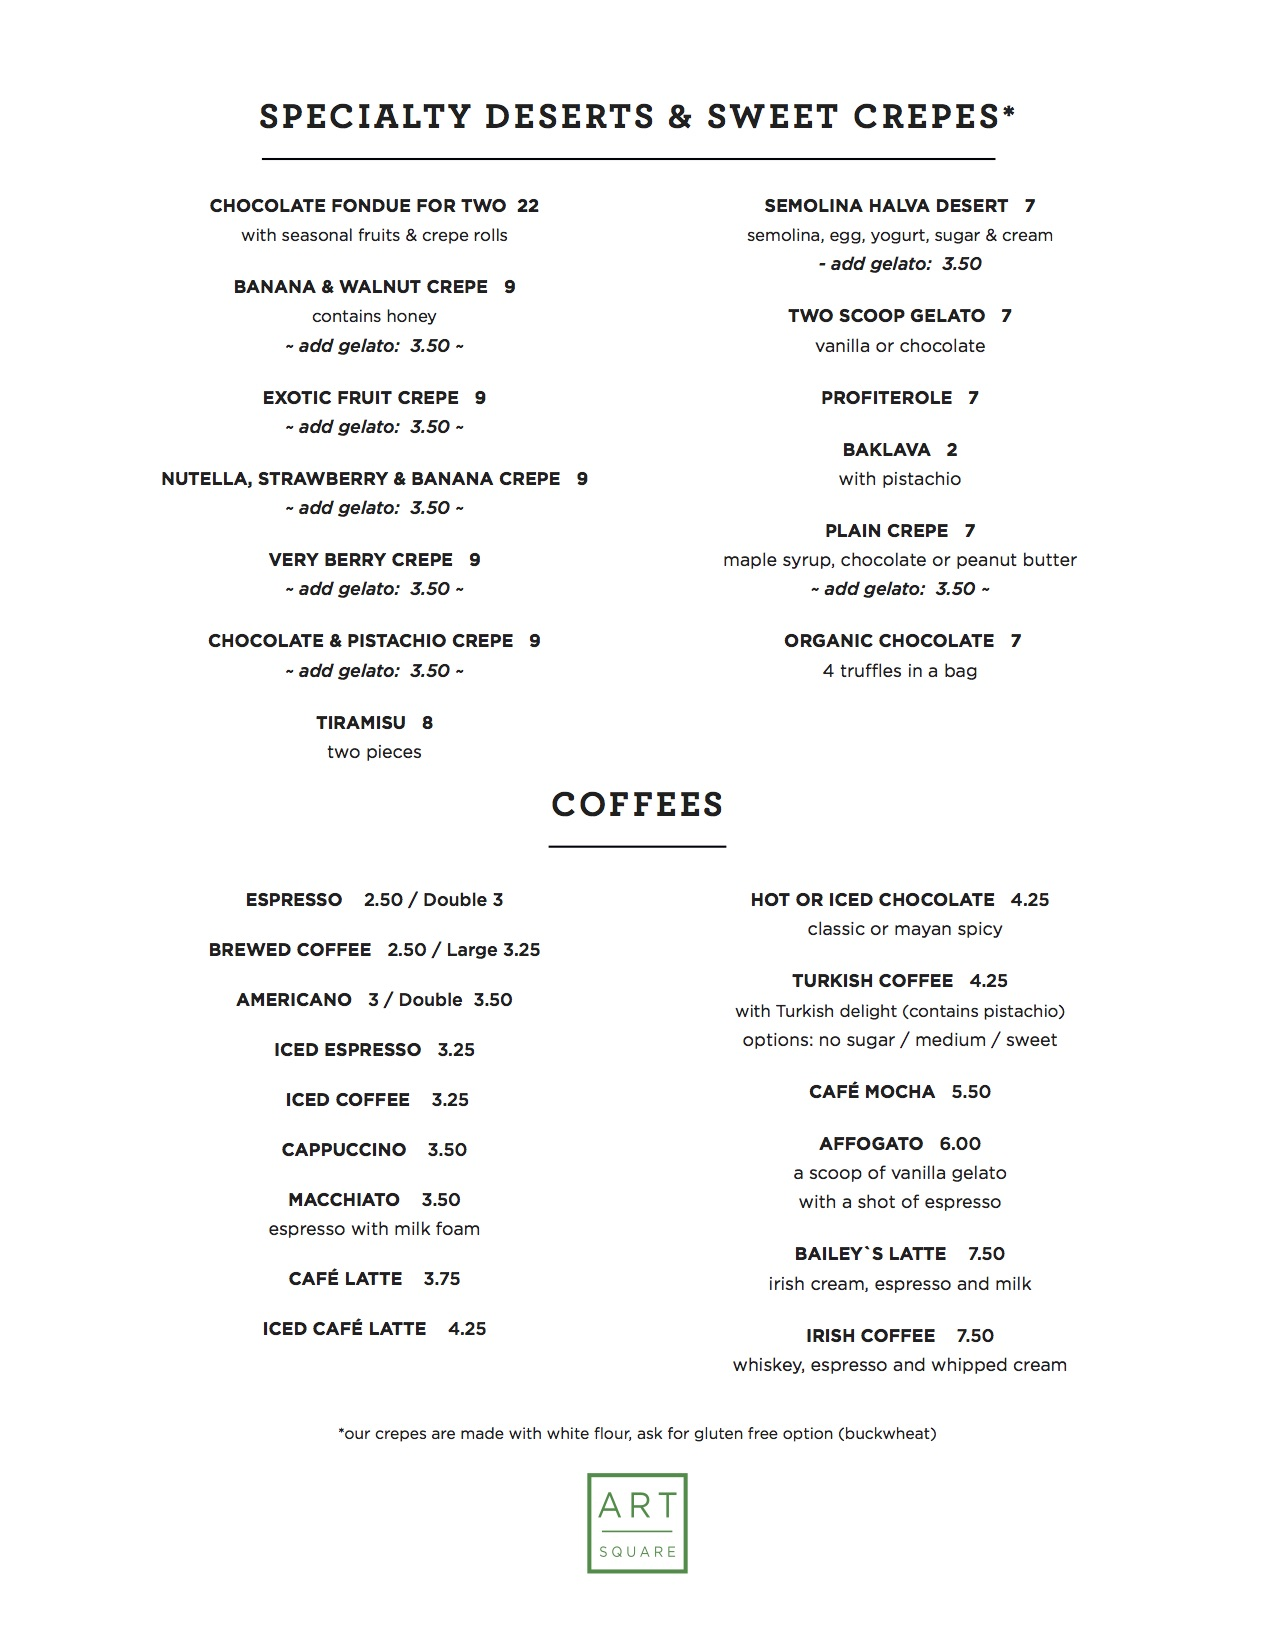 Art Square Menu final April 2016_new_Page_05.jpg